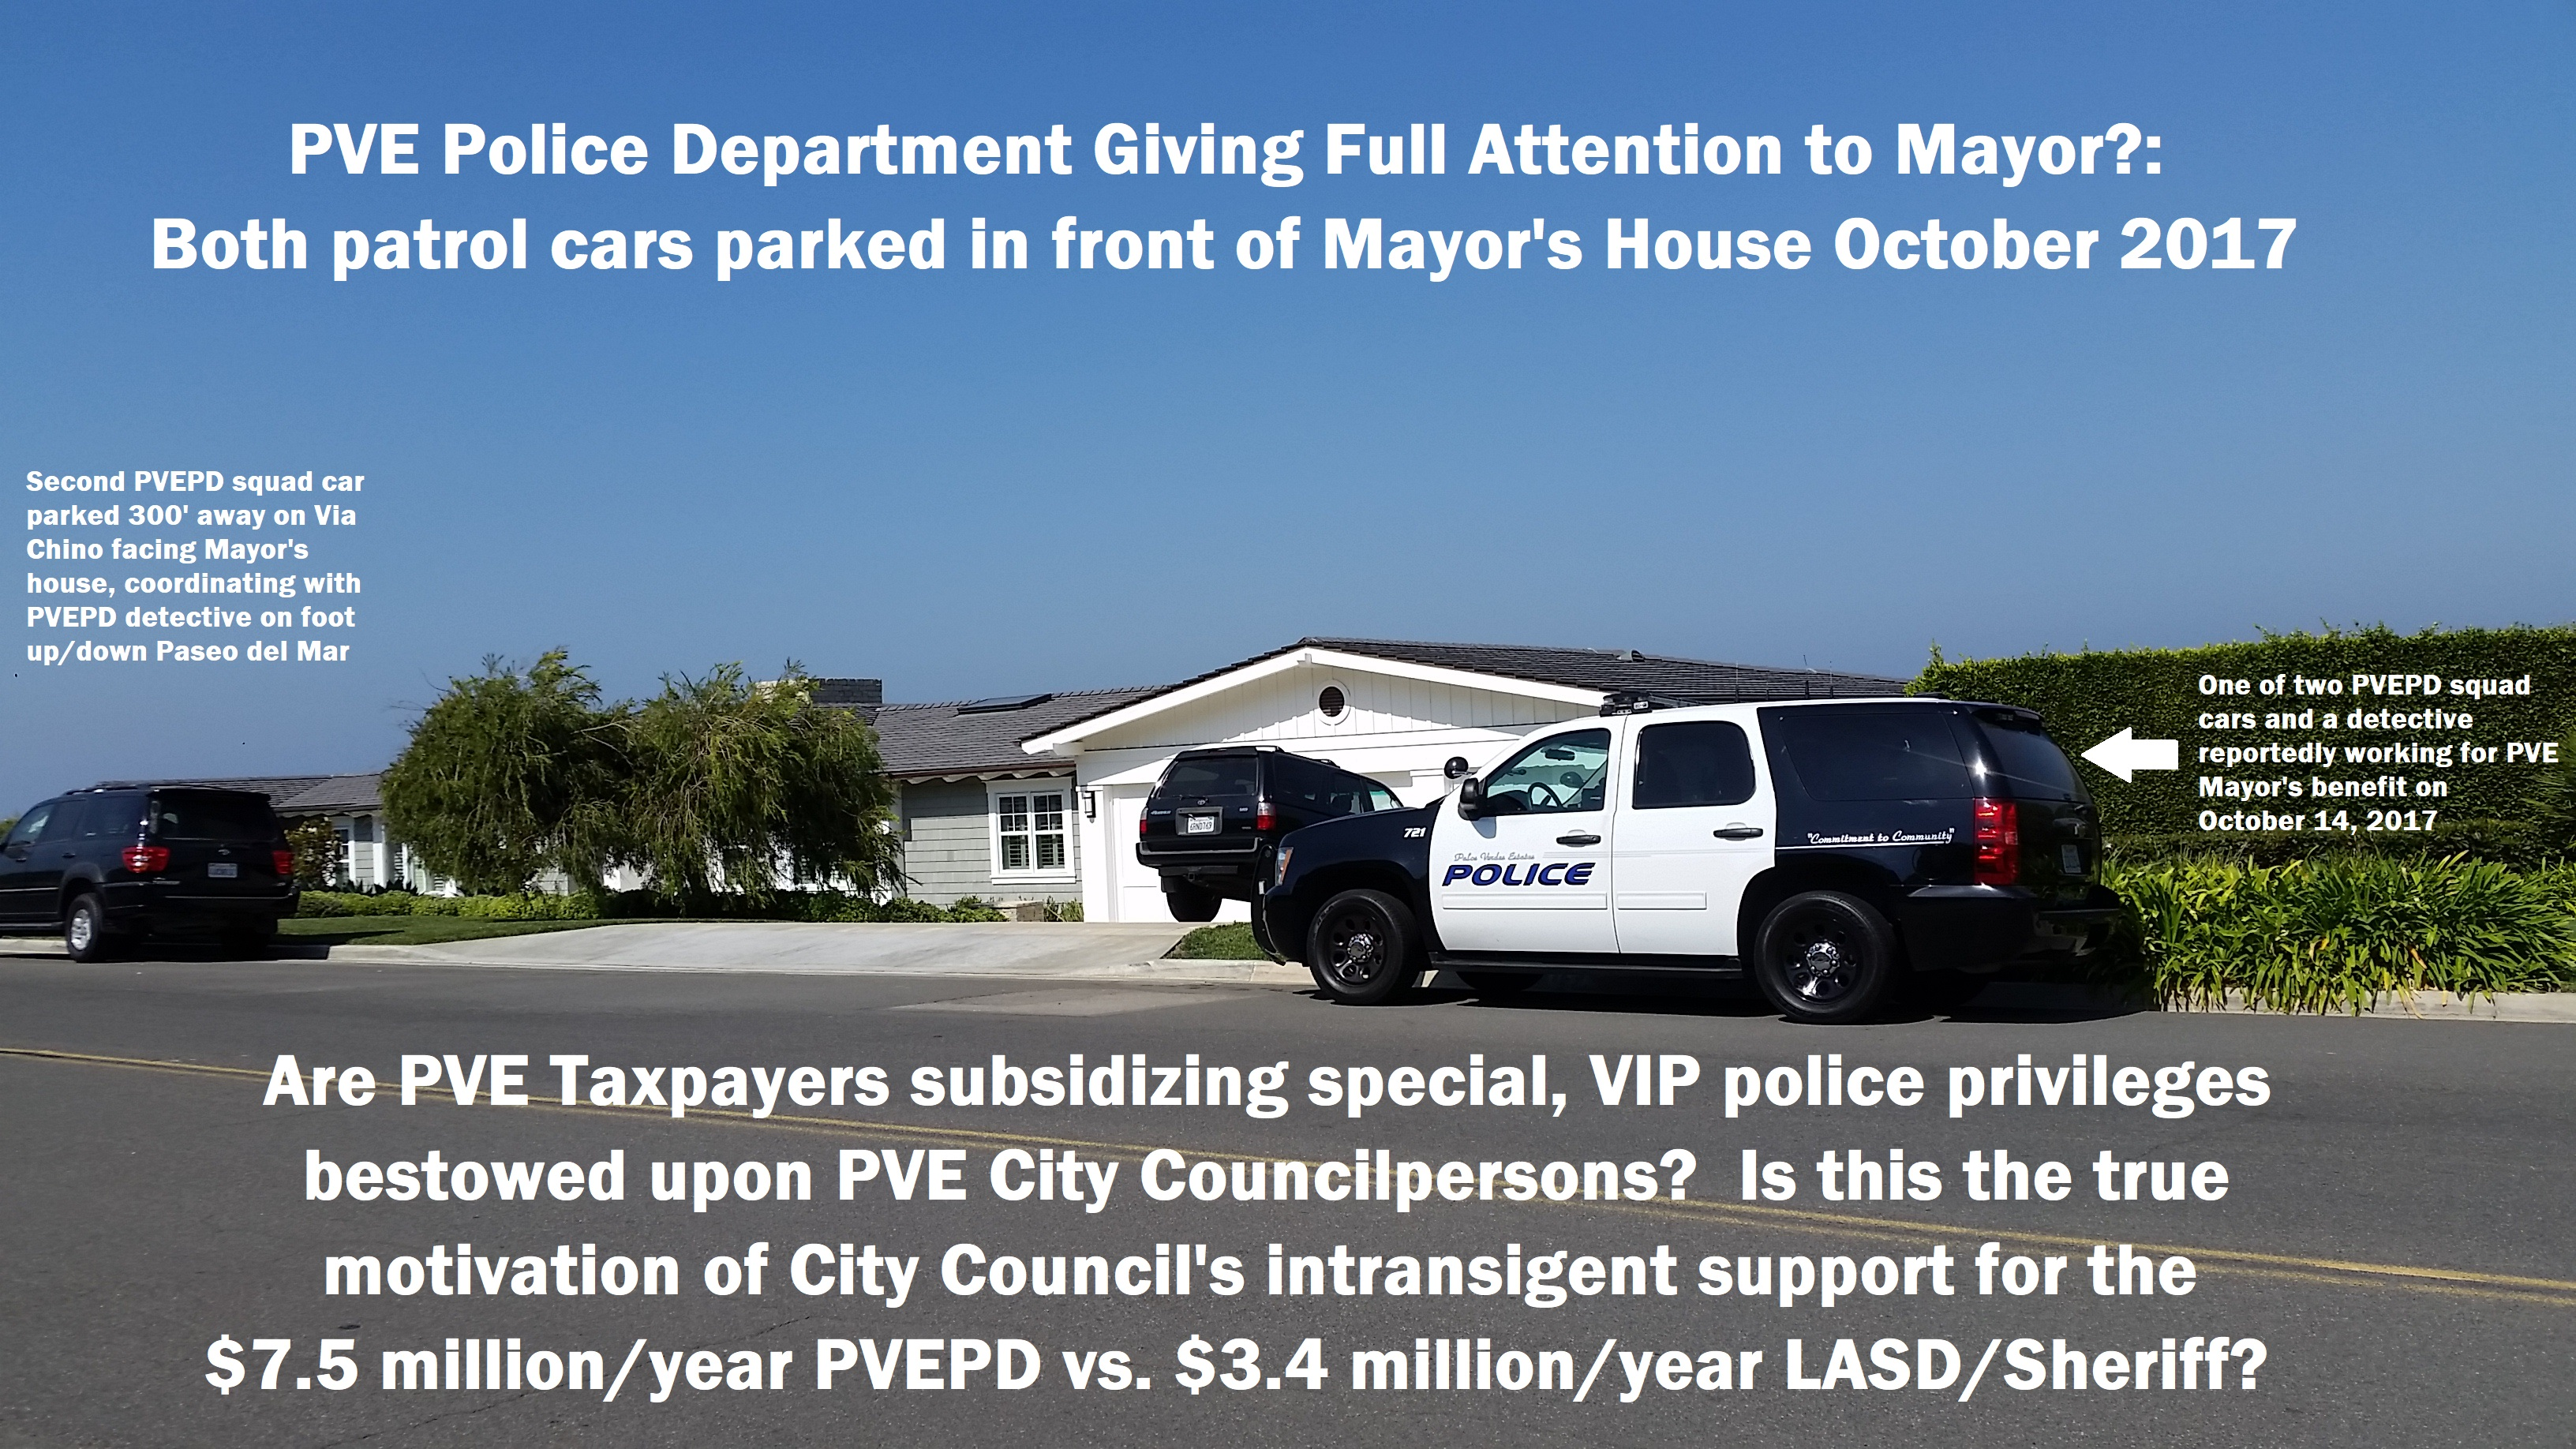 Are YOU subsidizing VIP Police Services for the Mayor of PVE?